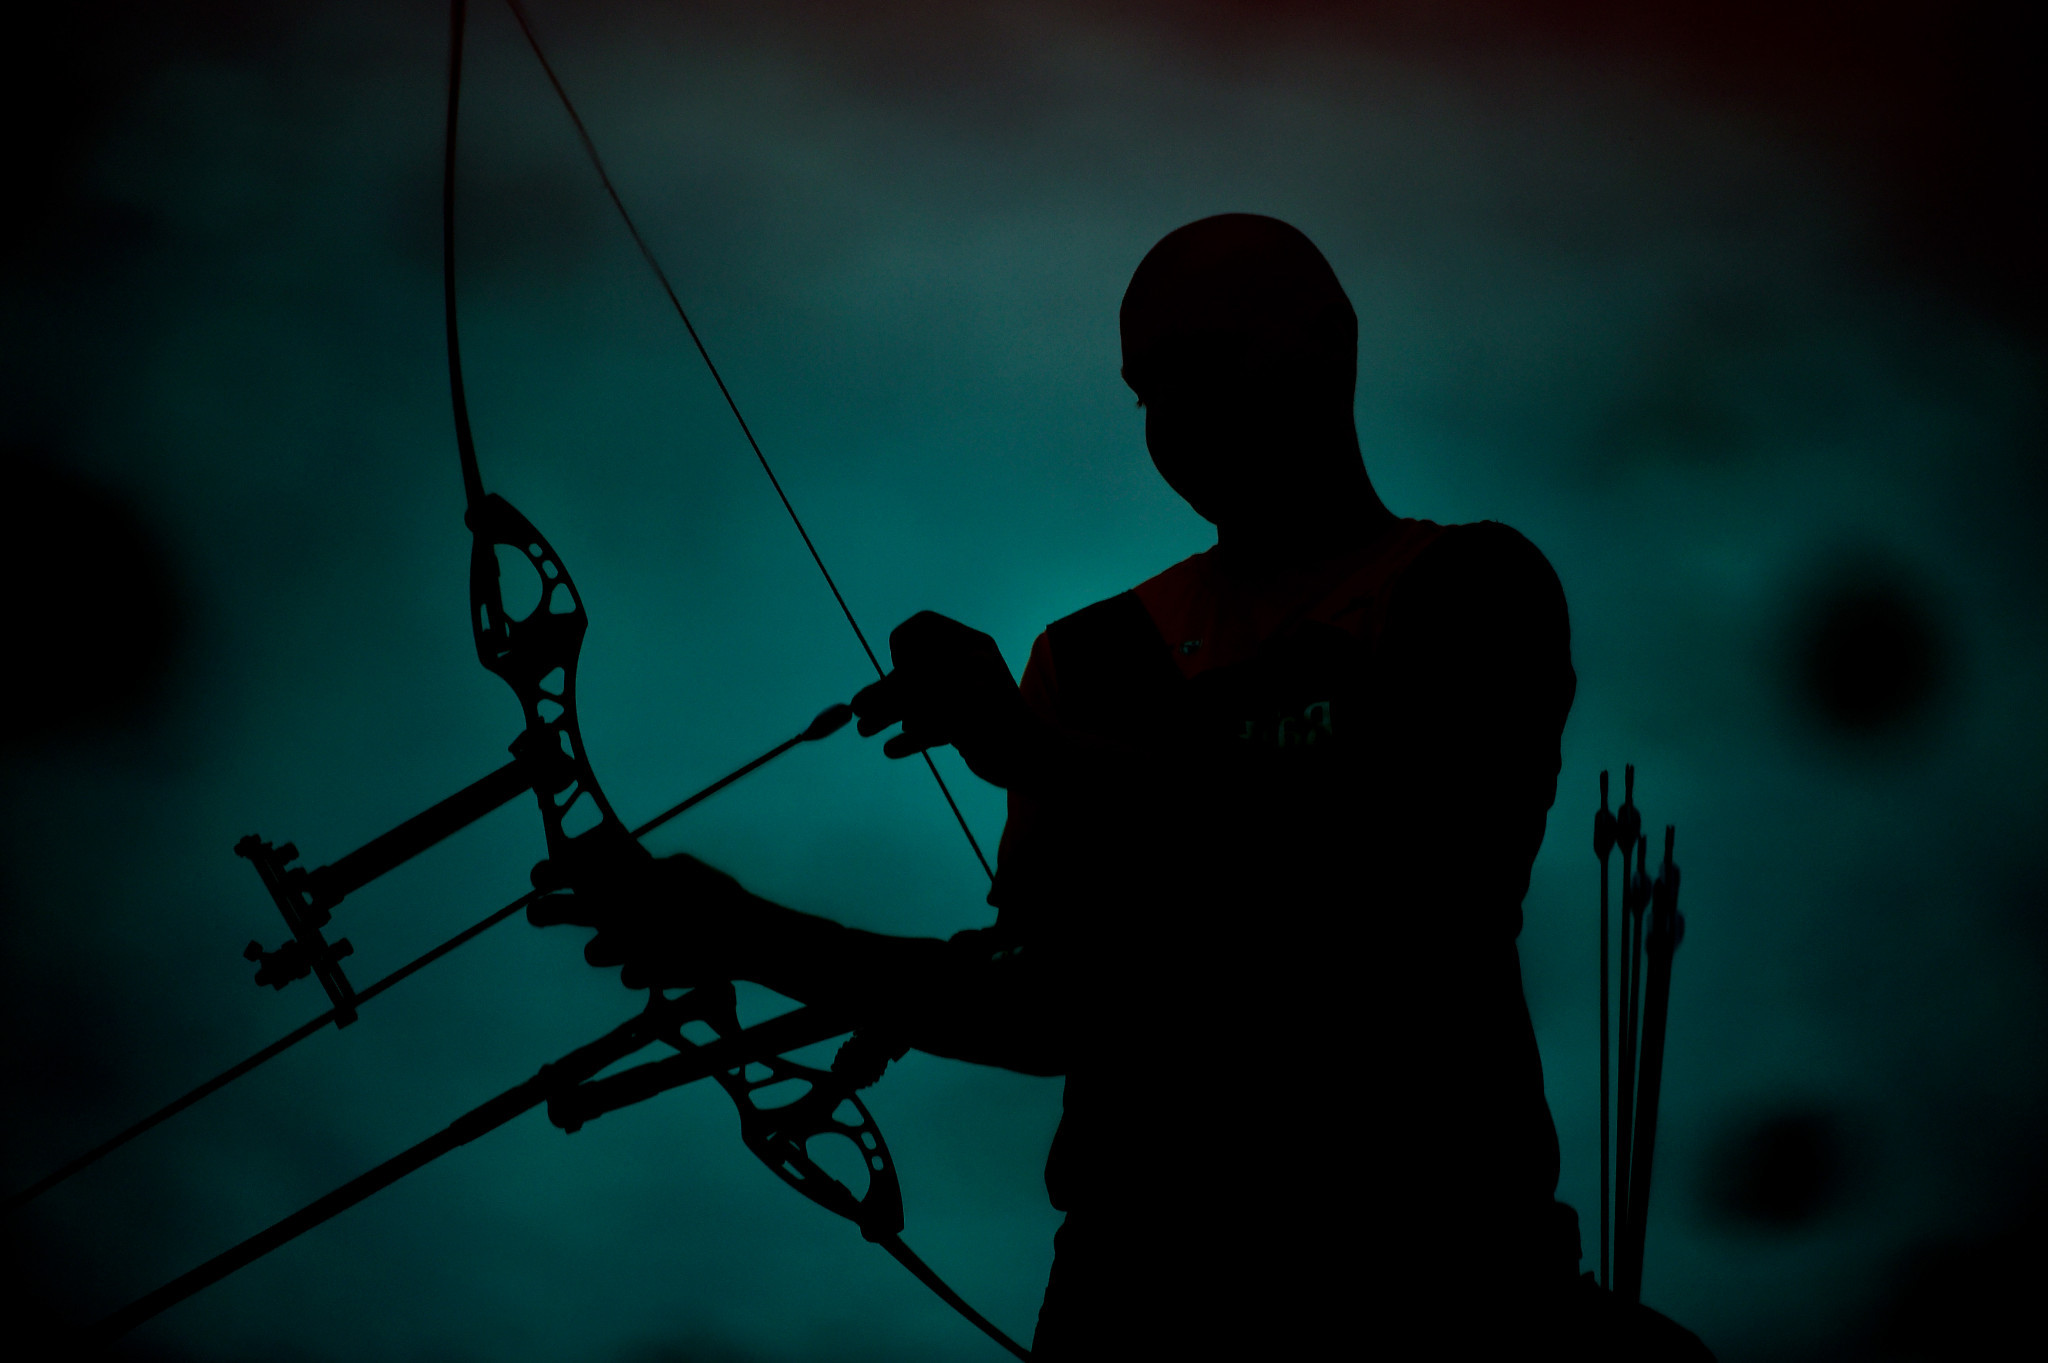 World Archery to hold no international events before September